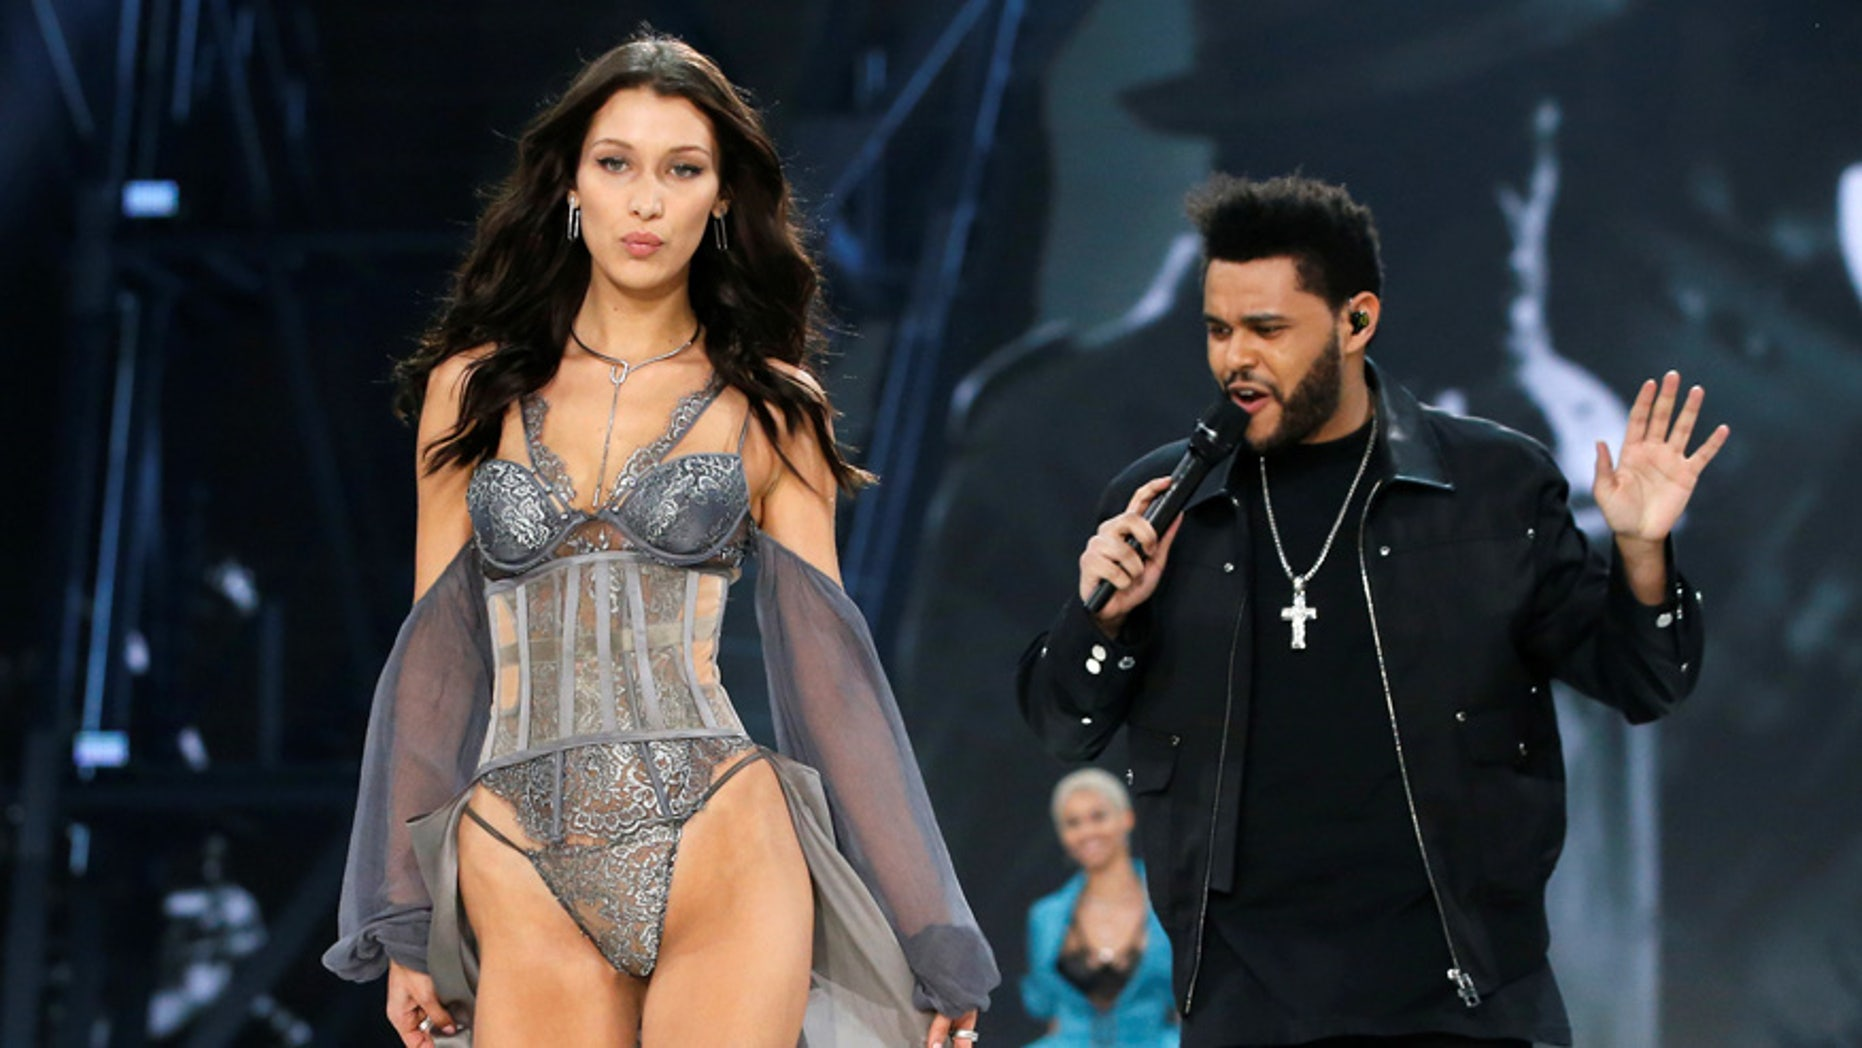 The Weeknd took to Instagram on Tuesday to wish Bella Hadida happy 22nd birthday.